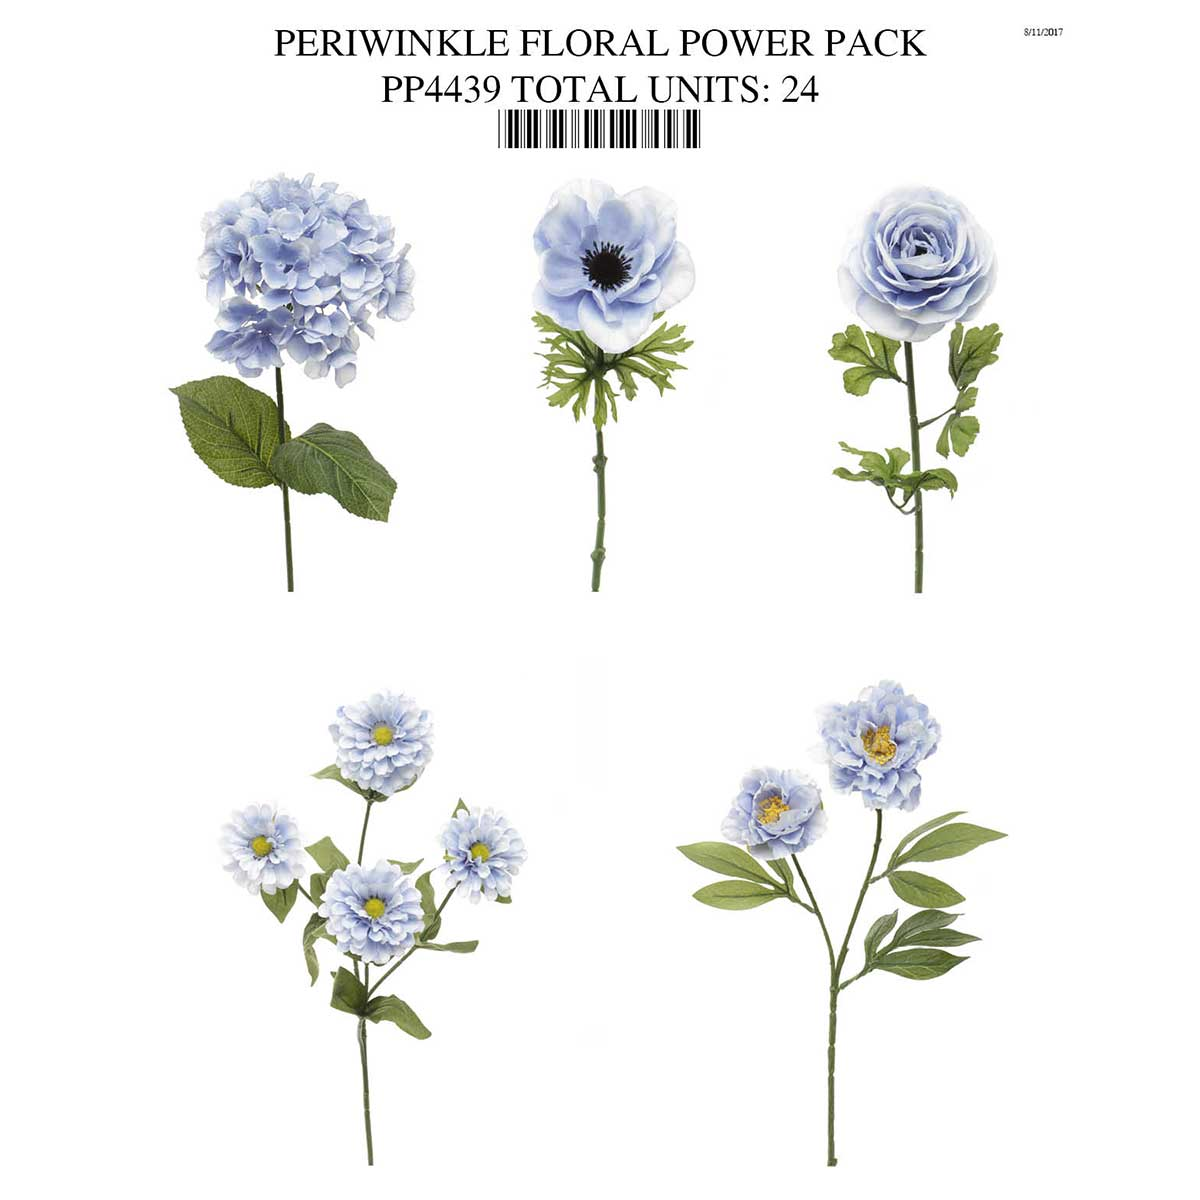 PERIWINKLE FLORAL POWER PACK PP4439